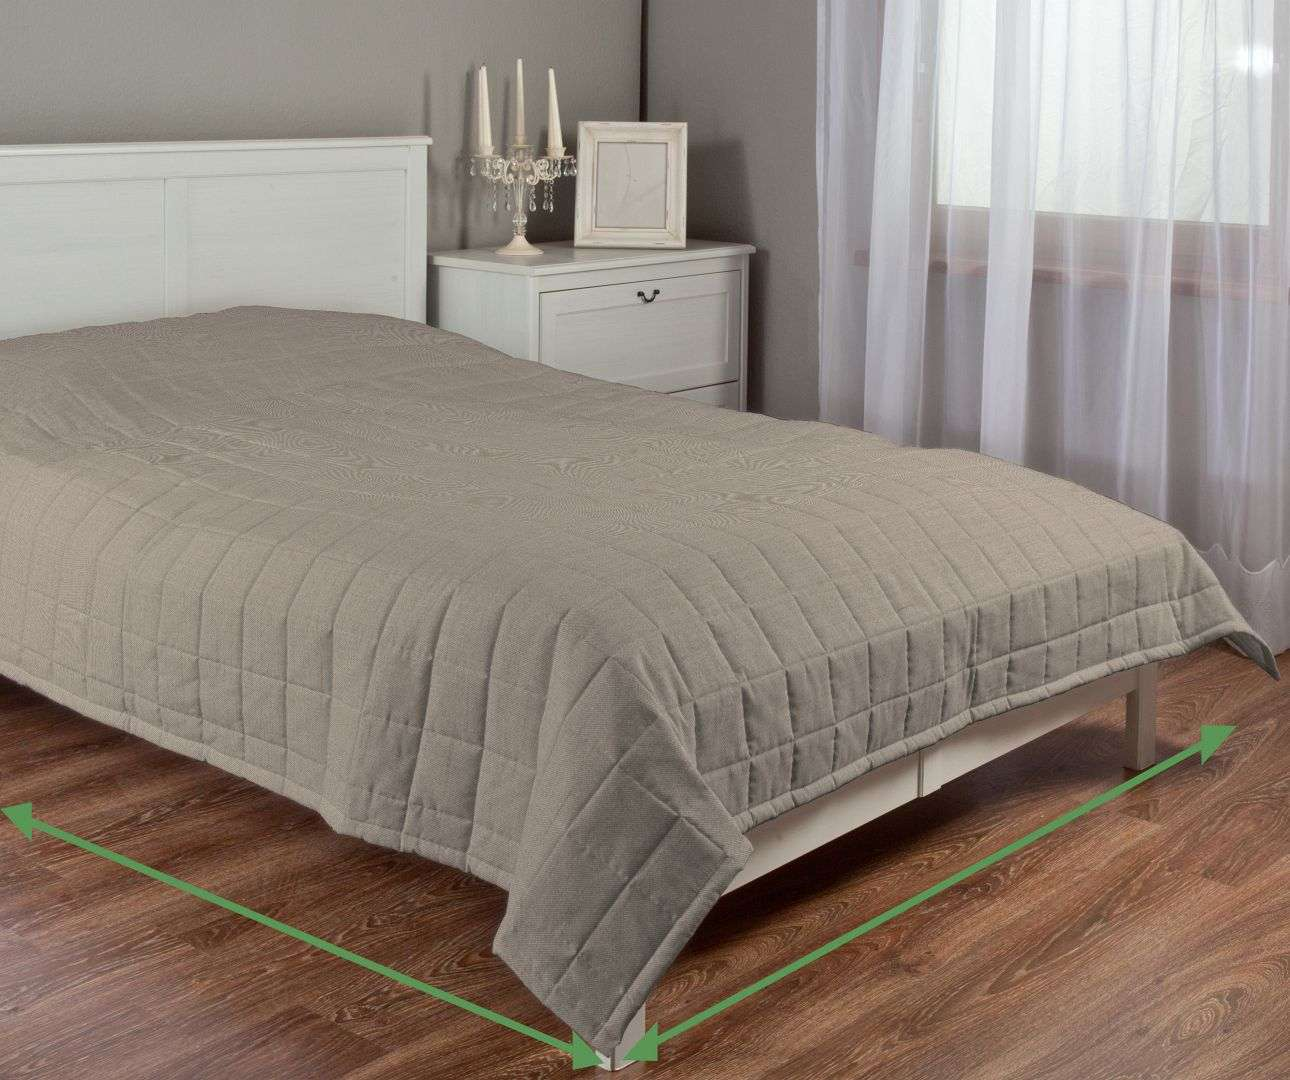 Quilted throw (check quilt pattern) in collection Porto, fabric: 160-57